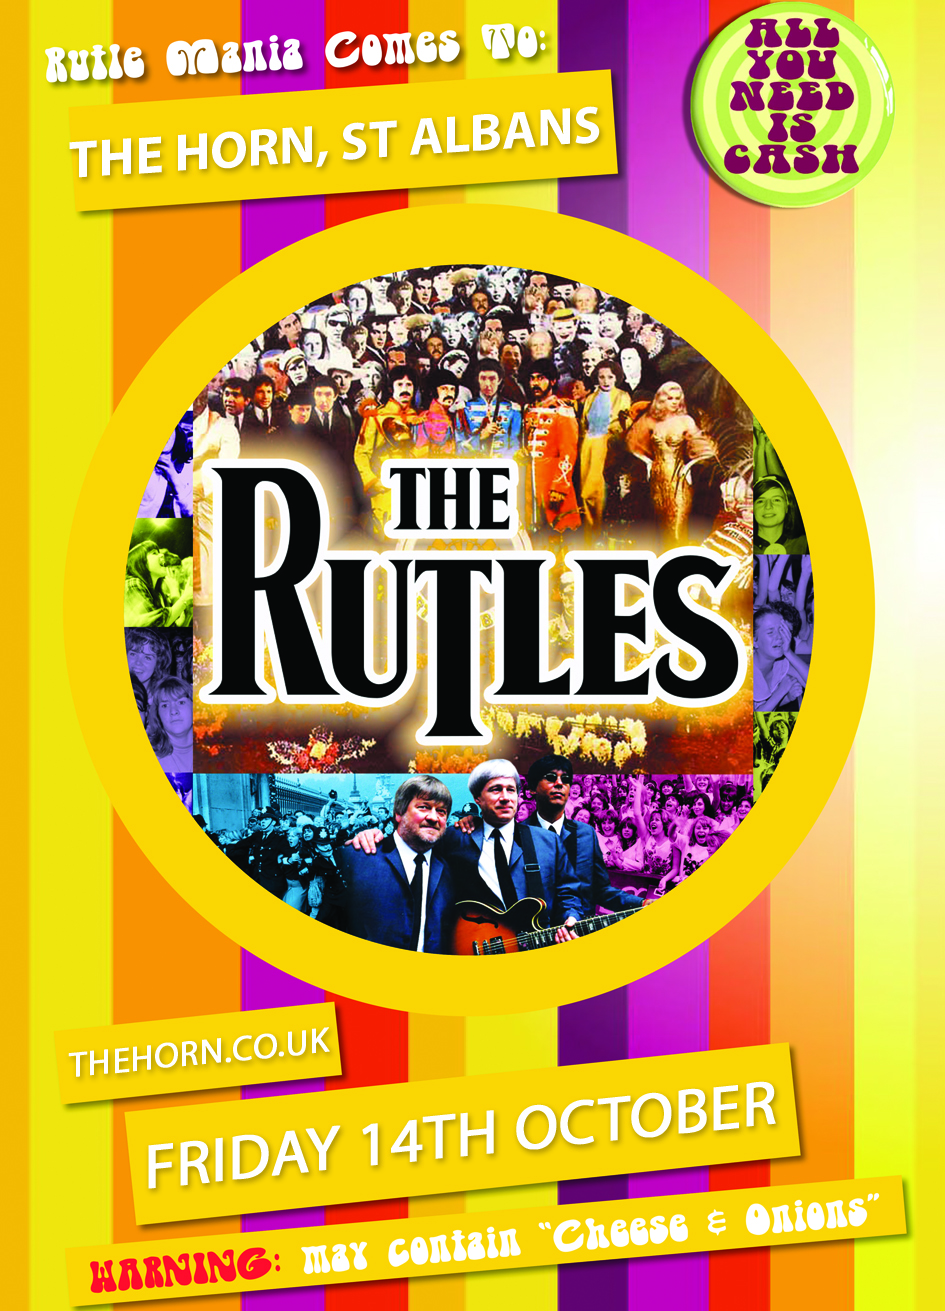 "THE RUTLES ( https://www.facebook.com/TheRutles ) It all began 40 years ago when Eric Idle (Monty Python) persuaded Neil Innes (Bonzo Dog Doo Dah Band) to join him in a TV comedy series for BBC 2 called Rutland Weekend Television. The concept was satirical - a spoof low-budget TV station, (the smallest in Britain) that could only churn out ludicrously cheap ""programmes"".  Idle would write sketches and Innes would put pictures to songs…  Innes suggested to Idle that they could do a send-up of A Hard Day's Night, the Beatles first movie. ""It's in Black and White, it's speeded up, and we could wear wigs and tight trousers and run around a field somewhere…""  Idle agreed. ""I've got a sketch about a man making a documentary who's so boring, the camera runs away from him…""  And so the name ""Rutles"" was born. But no one could have foreseen what was around the corner. A year or so later, such was the enormous pressure on the Beatles to get back together again, the one-off Rutland Weekend clip was shown in the USA – as part of a ""running gag"" - on NBC's hugely popular ""Saturday Night Live"".  It was a sensation. Thousands of people wrote in. Mailbags were bulging - and so were the trousers. Everyone got the joke. Lorne Michaels, the producer, believed the entire Beatles story could now be re-told – as ""The Rutles"". The people upstairs at NBC agreed and gave him the money.  Eric Idle quickly came up with the title: ""All You Need Is Cash – the story of the Pre-Fab Four"". Bill Murray, John Belushi and Dan Ackroyd soon got involved – as did George Harrison, who brought in Mick Jagger and Paul Simon.  The world's first ""Rockumentary"" – or ""Mockumentary"" - was broadcast in the discontented summer of 1978. To this day it proudly holds the record for the lowest viewing figures - ever - on American Prime Time Television."